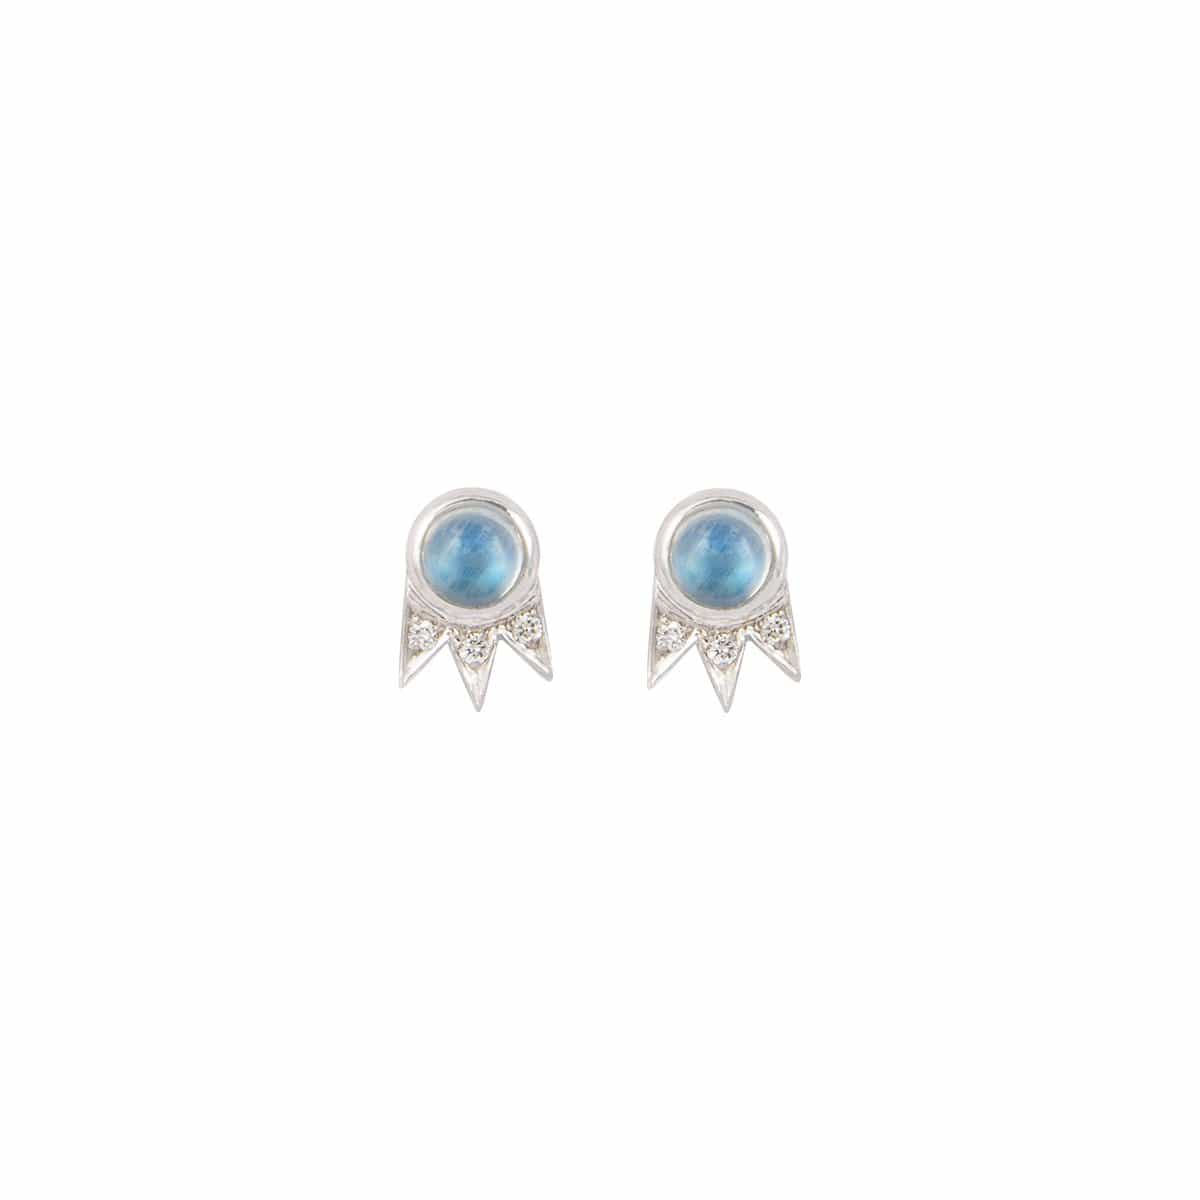 Moonstone Diamond Shooting Star Stud Earrings - Curated Los Angeles